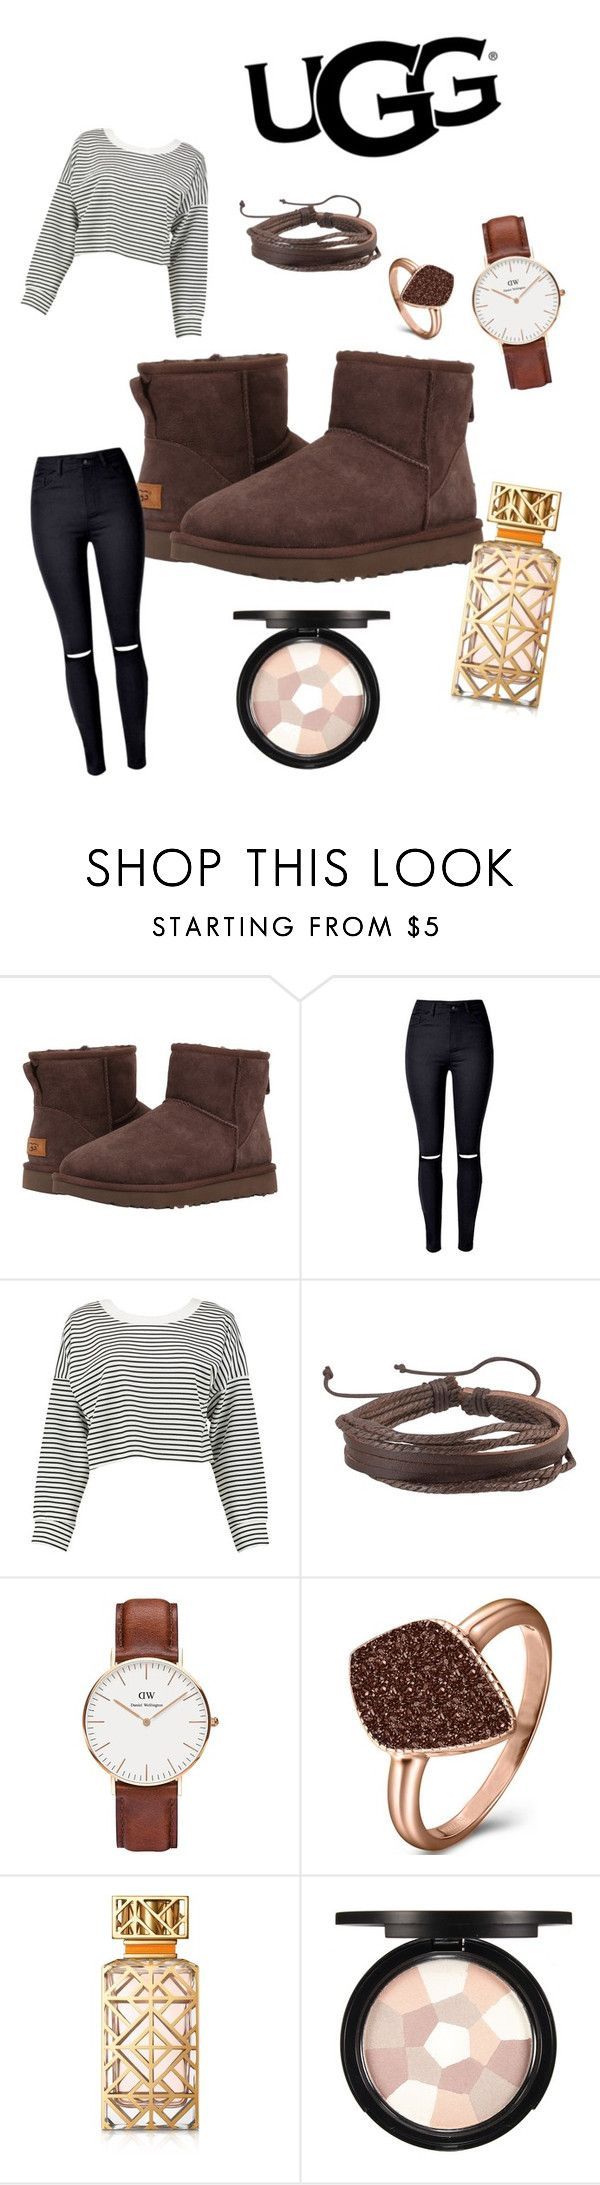 """Penelope - The Icon Perfected: UGG Classic II Contest Entry"" by kentigerna on Polyvore featuring moda, UGG Australia, Boohoo, Zodaca, Daniel Wellington, H.Azeem, Tory Burch, ugg e contestentry"